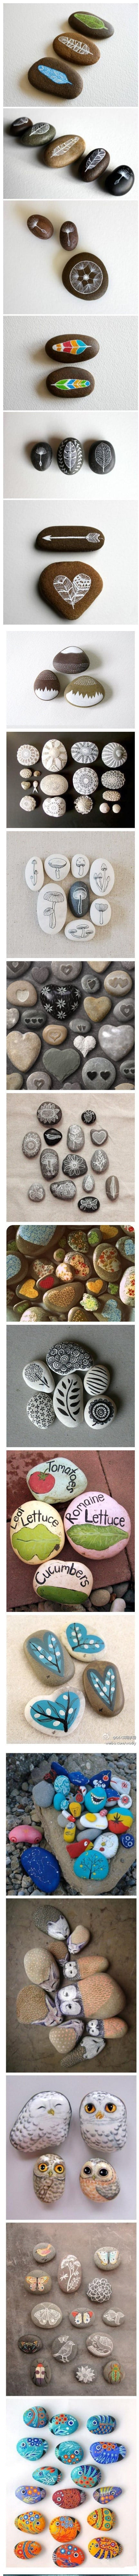 paper weights, creative art